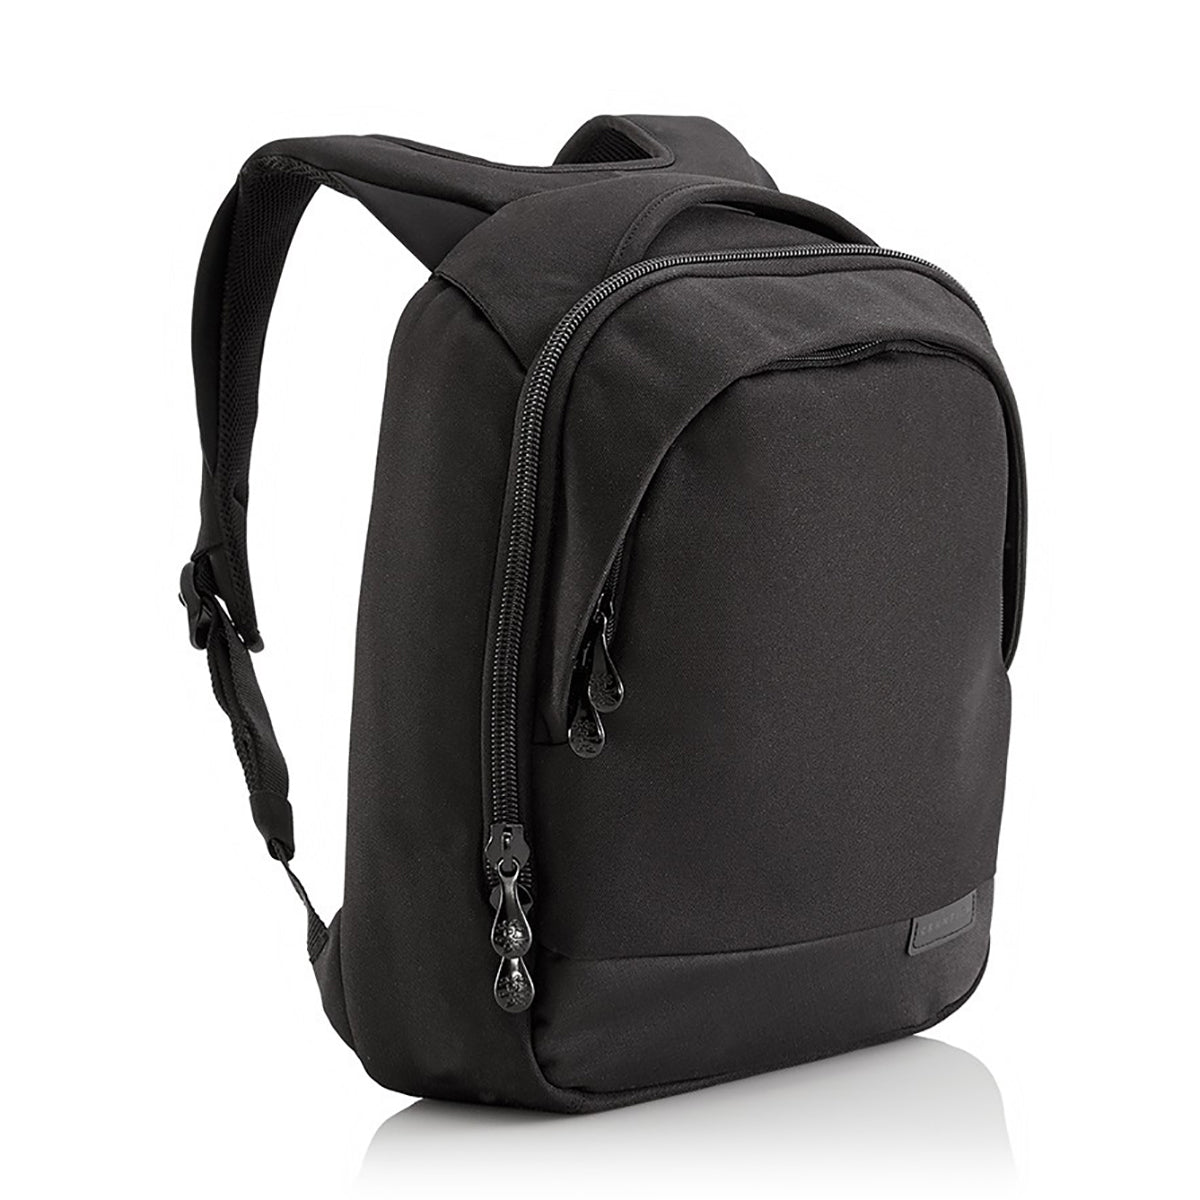 Crumpler: Mantra Compact Backpack - Black (MCT001-B00130)